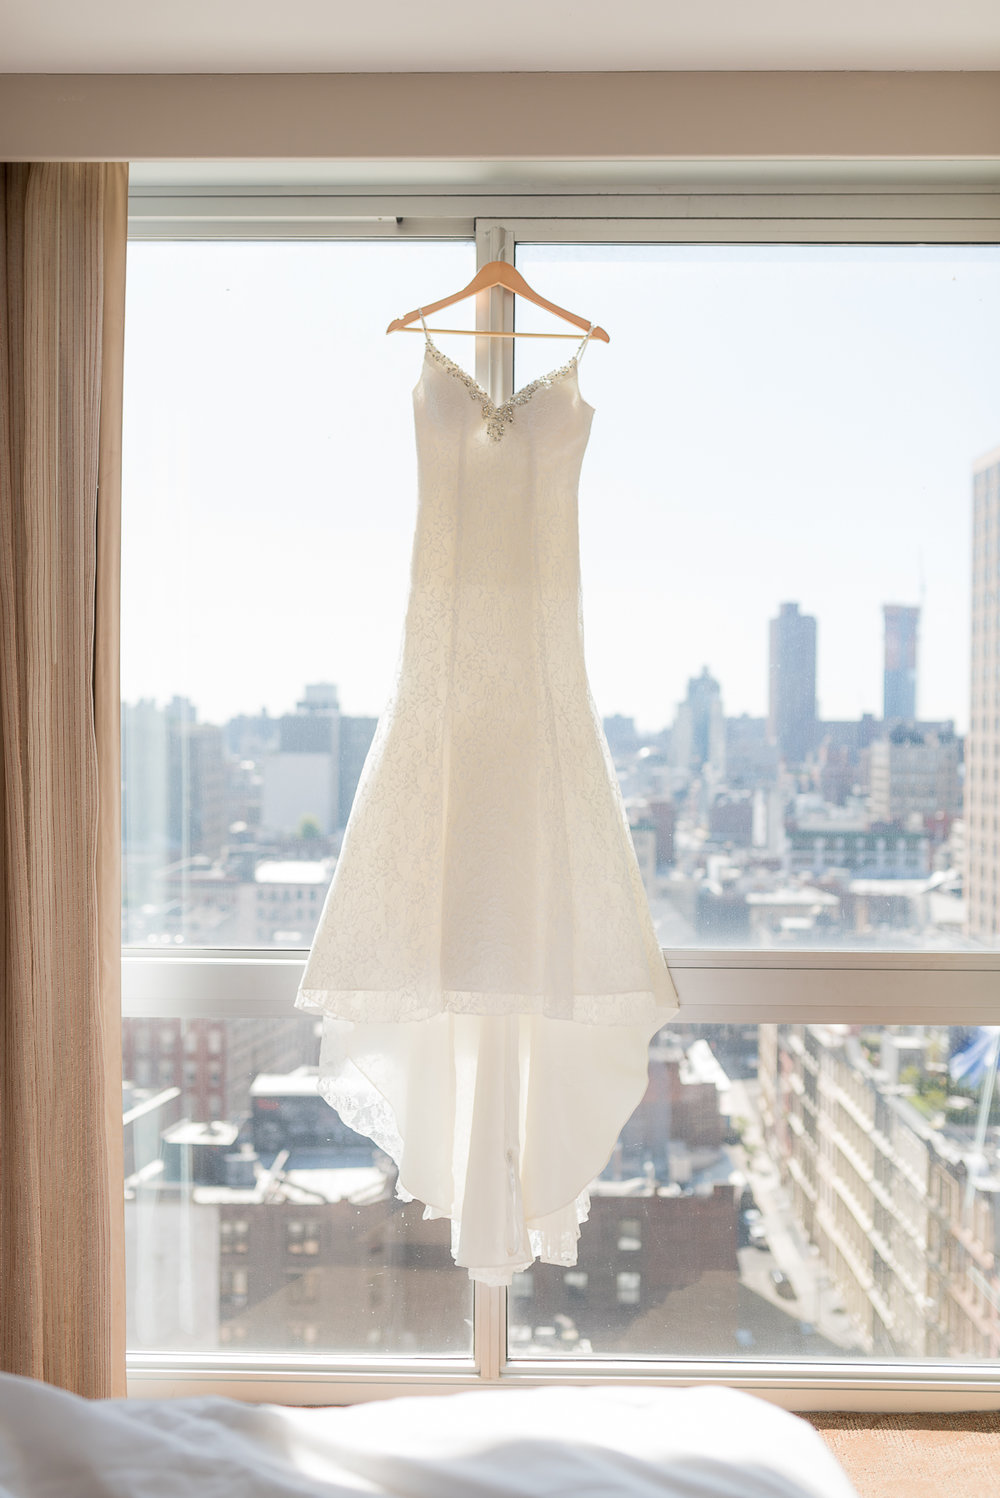 NYC-Ramscale-Wedding-Sheraton-Tribeca-Dress.jpg